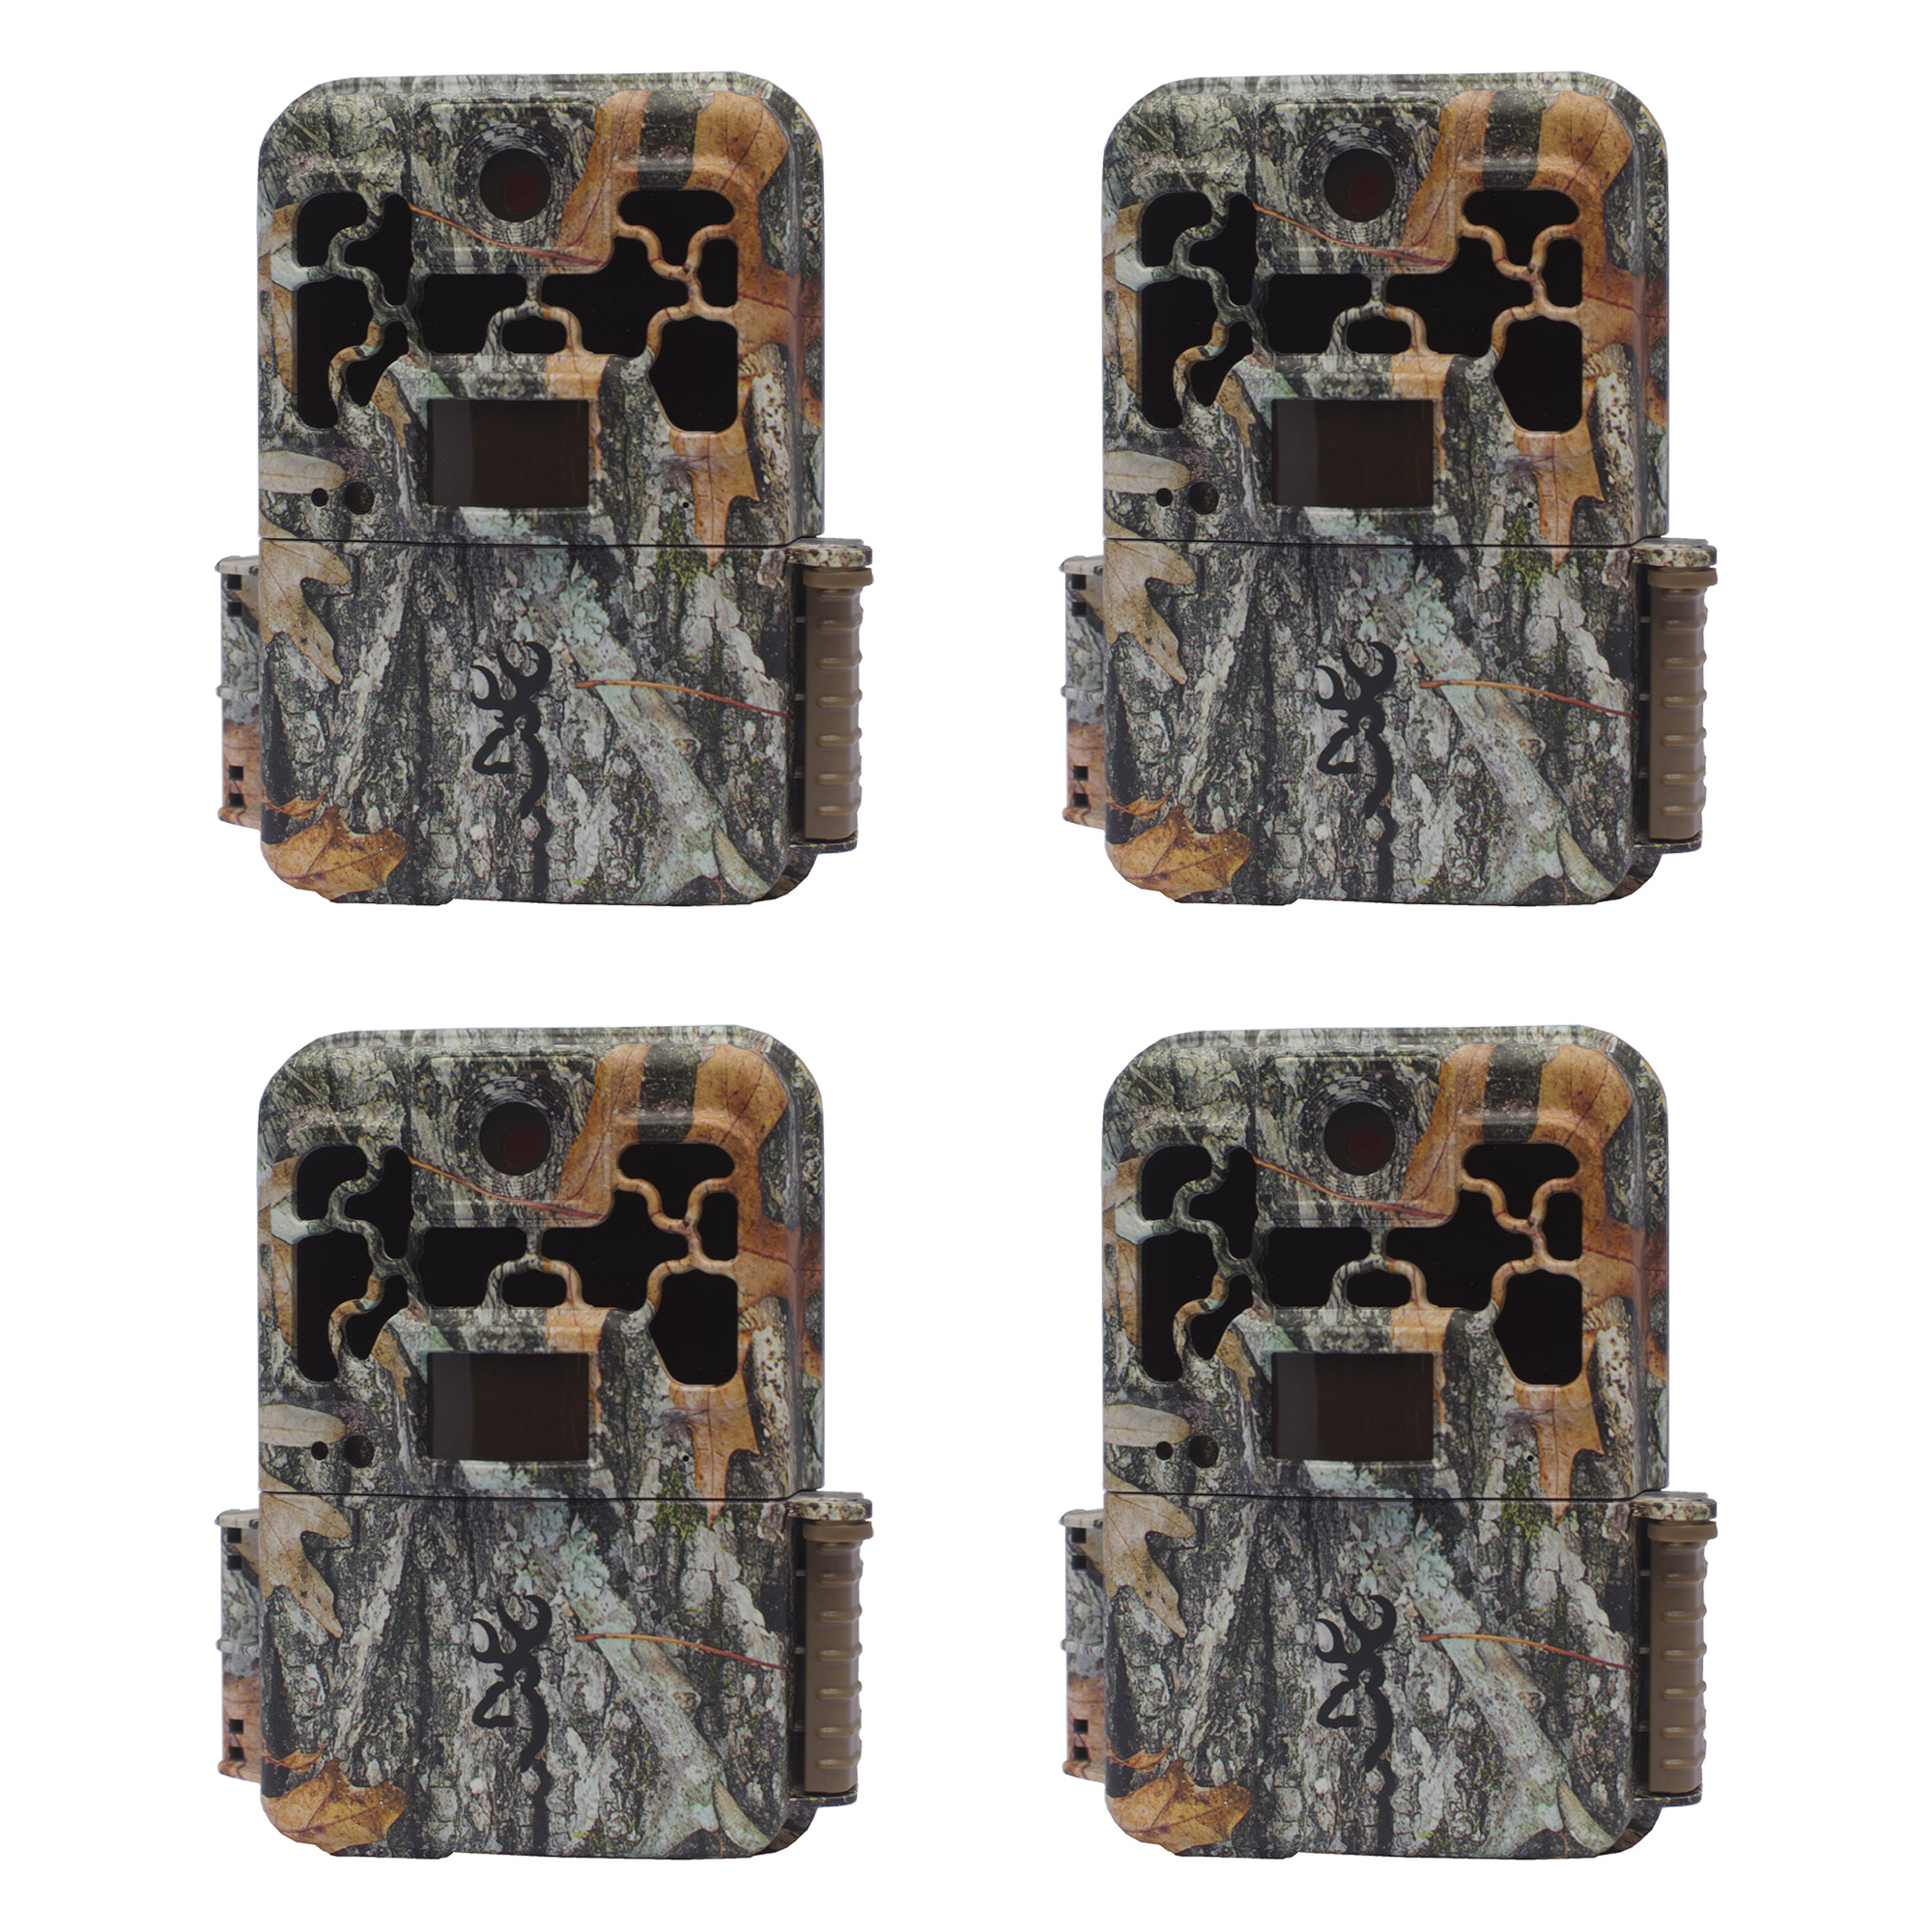 Browning Trail Cameras Spec Ops FHD Platinum 10MP Game Camera, 4 Pack | BTC8FHDP by Browning Trail Cameras